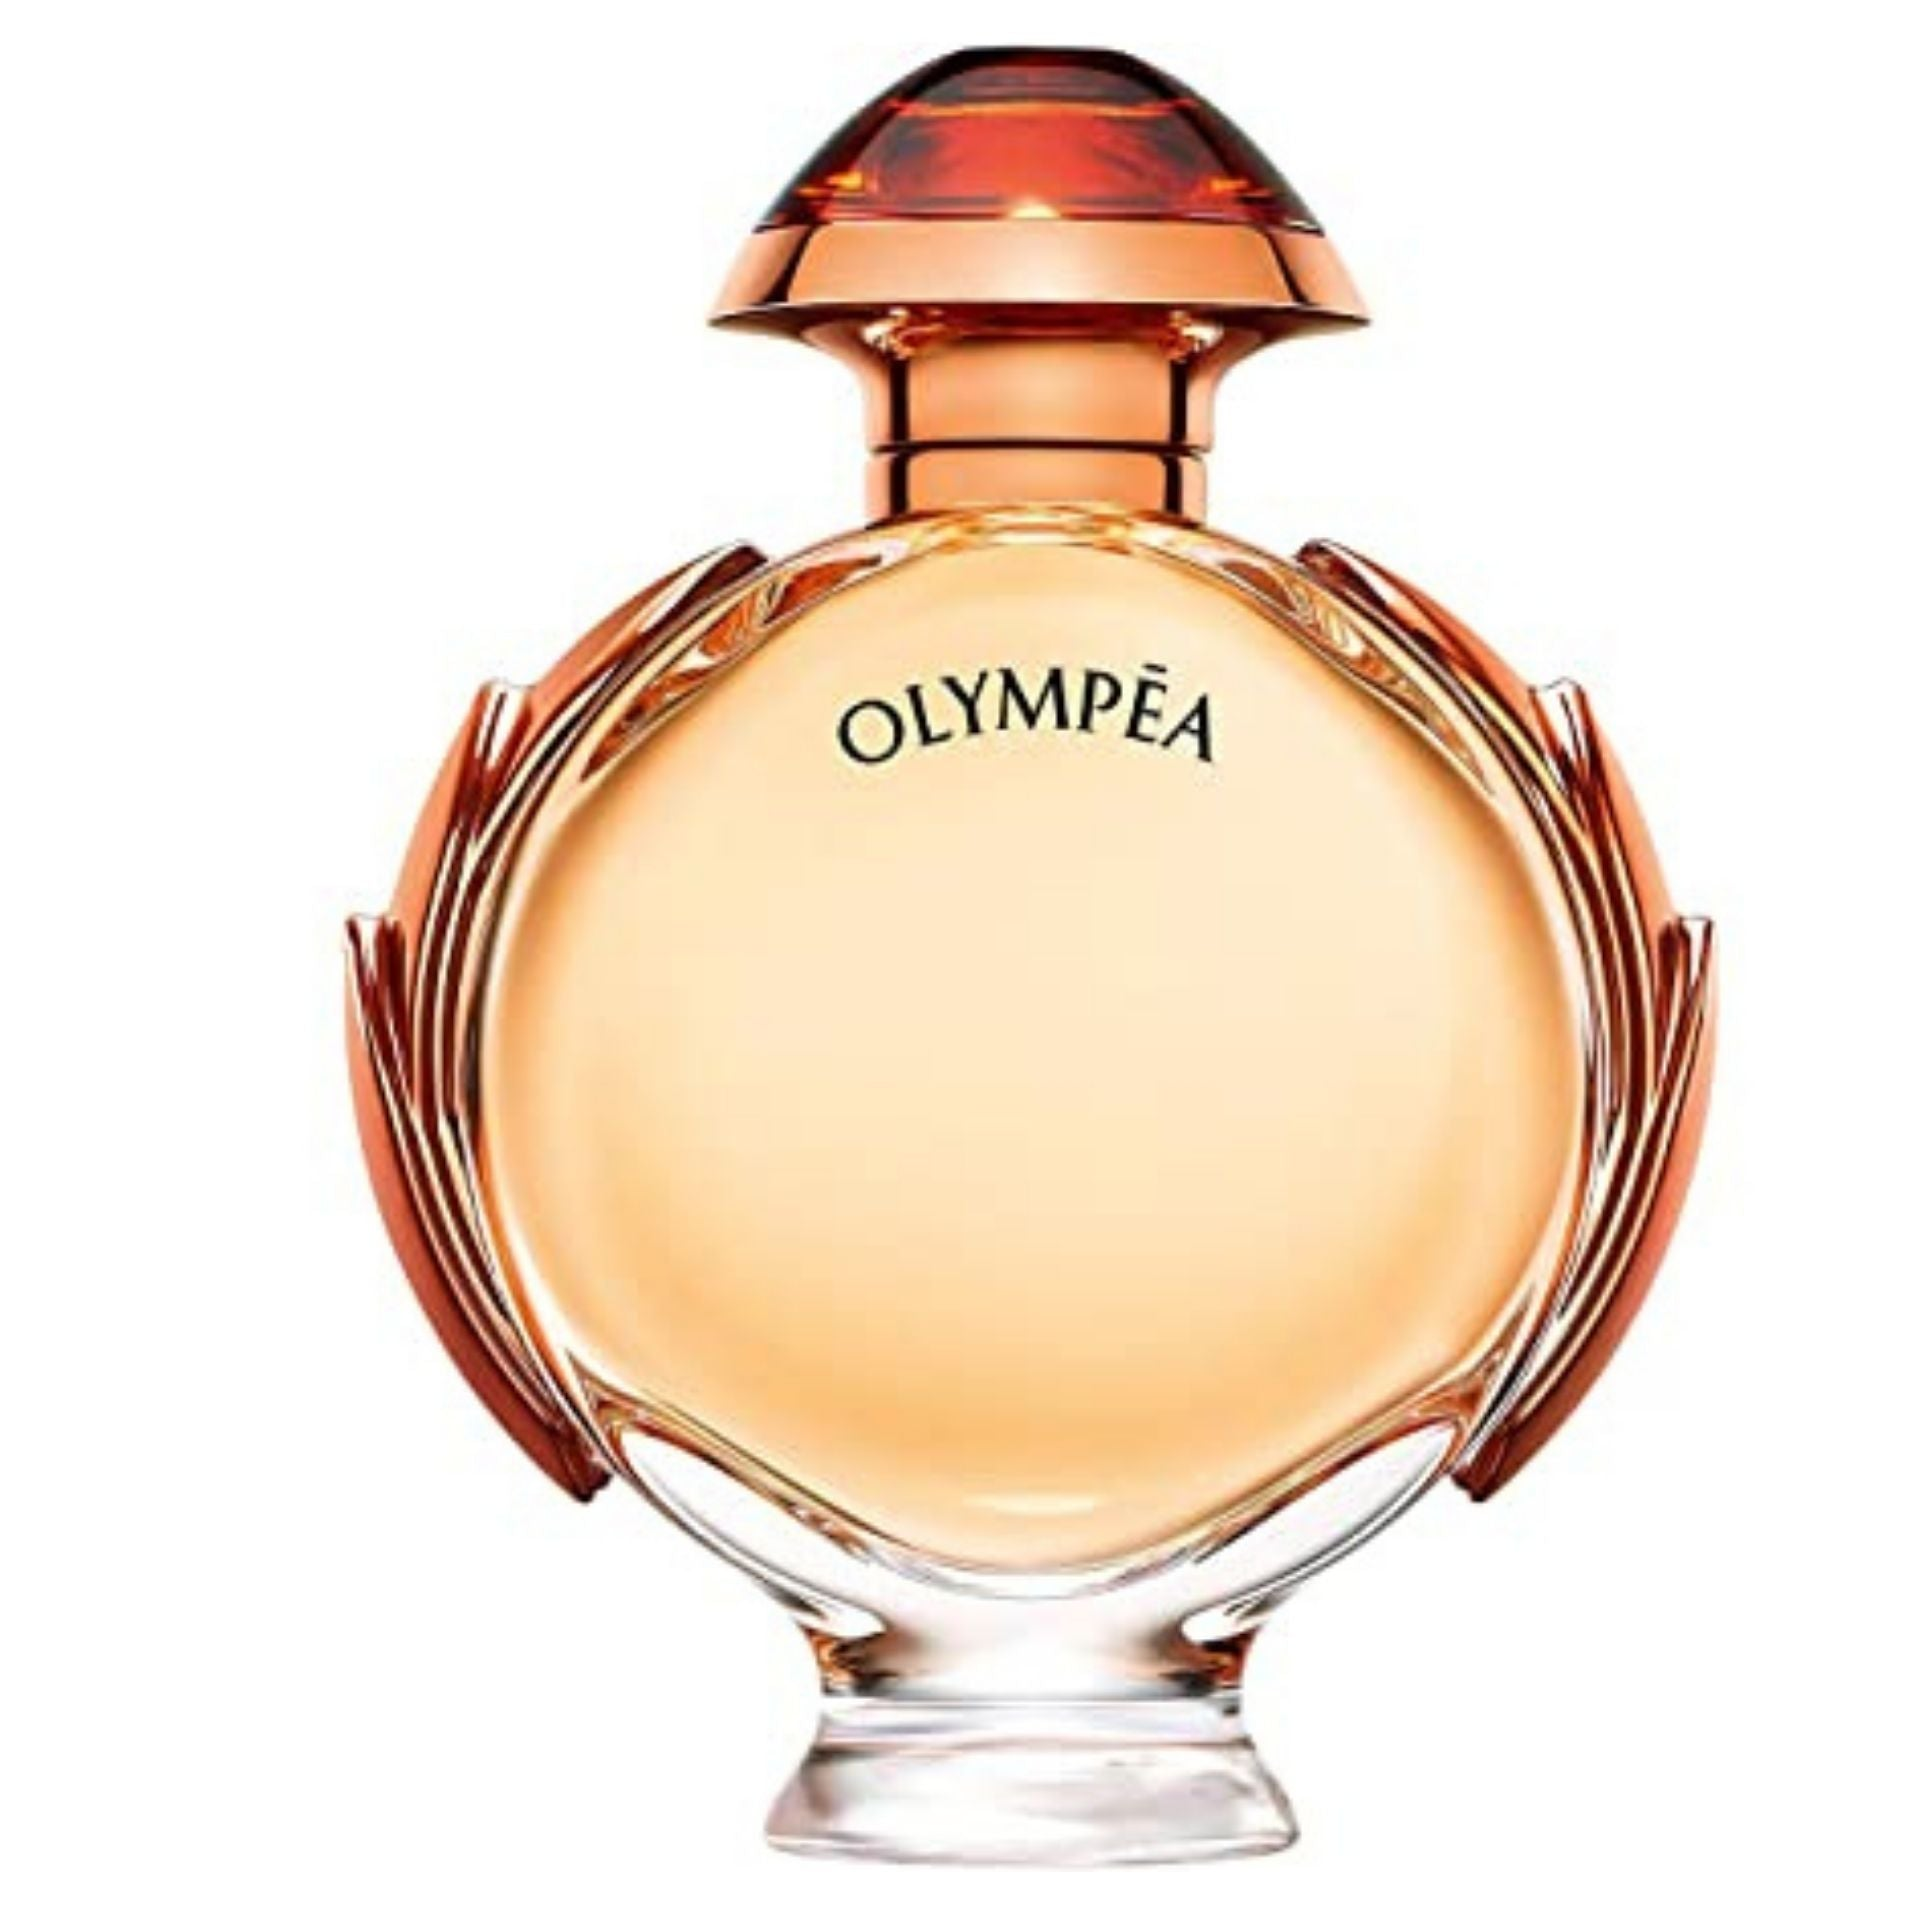 Perfume online shop In Egypt